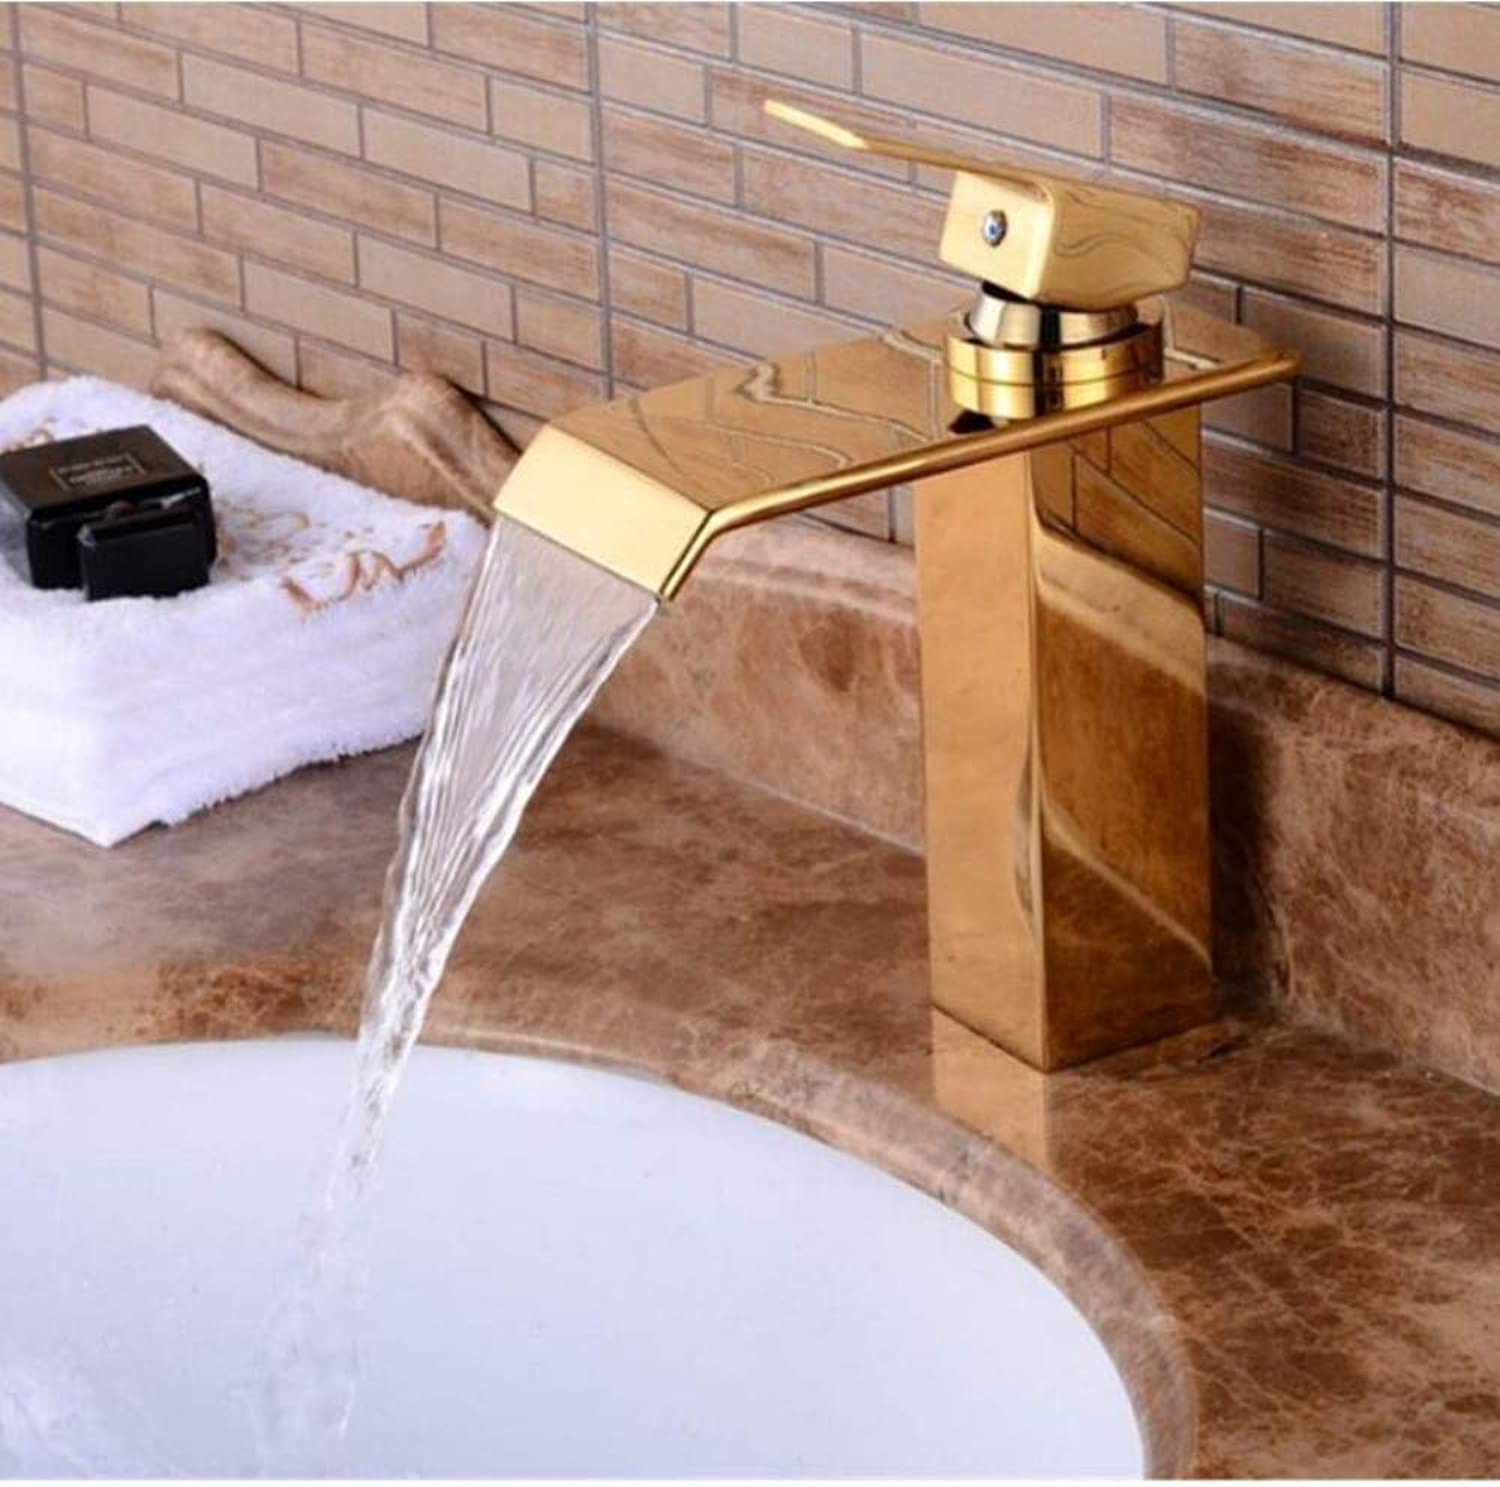 Brass Wall Faucet Chrome Brass Faucetfaucet Hot and Cold Deck Mounted